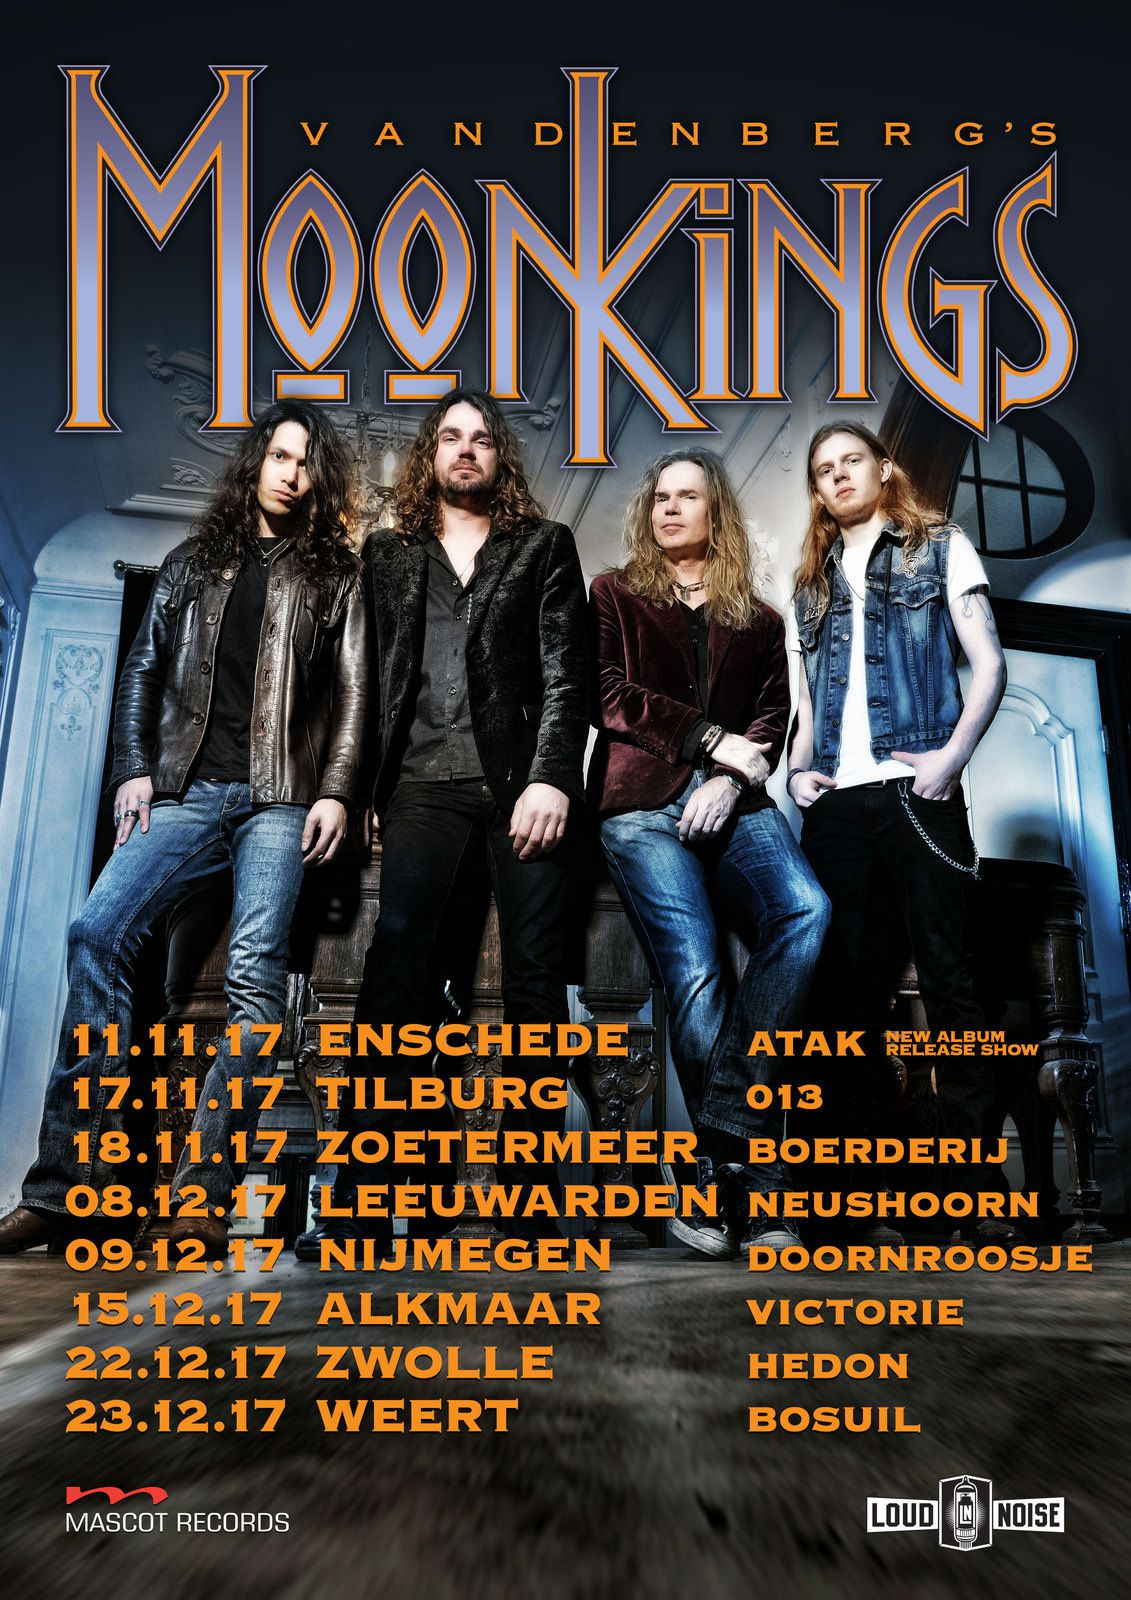 VANDENBERG'S MOONKINGS announce a new album